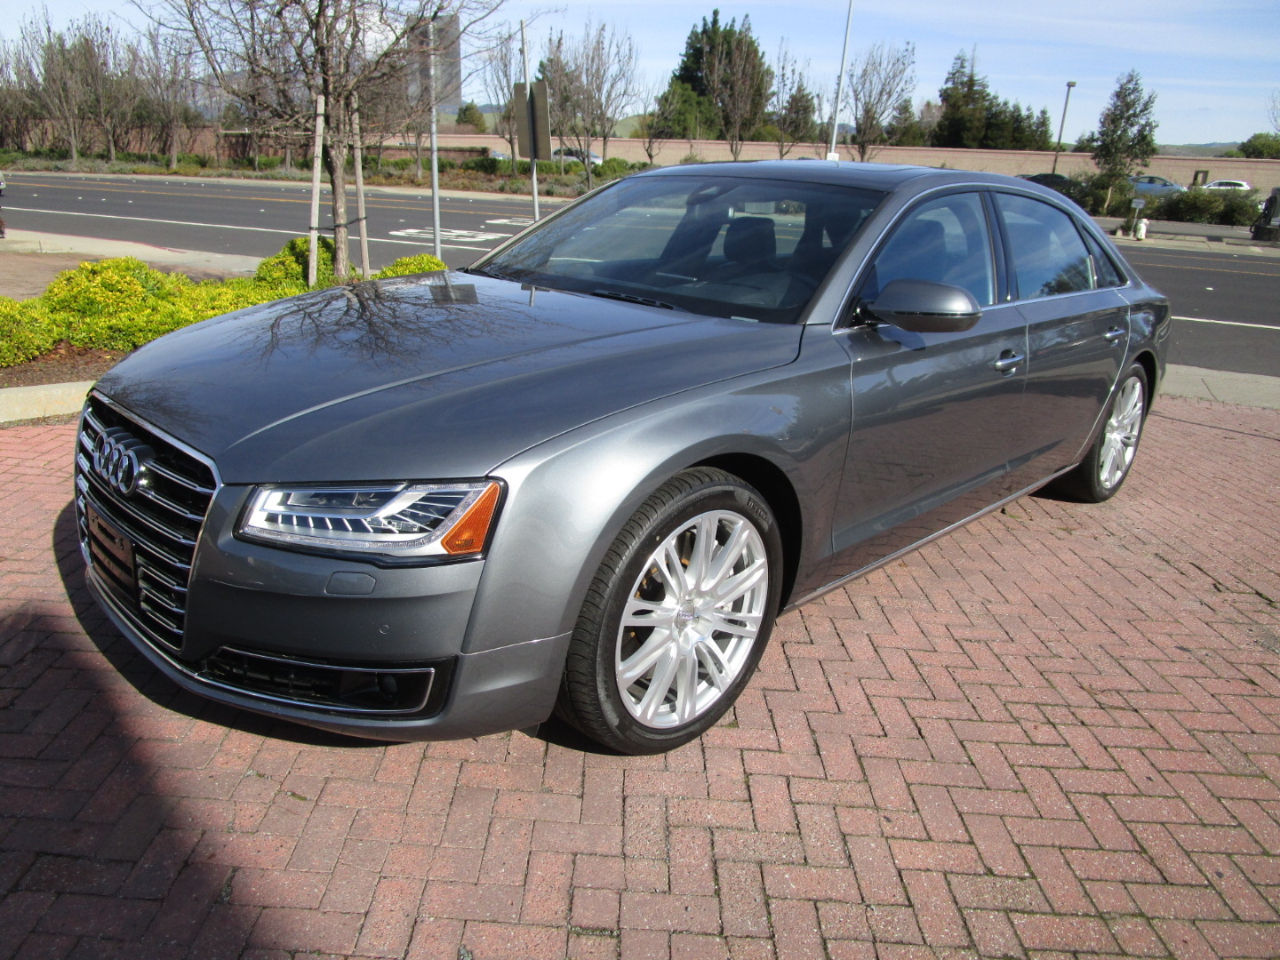 2015 Audi A8 L PREM*LUXURY*CLD WTHR*DRIVER ASSIST*$109K NEW**SAVE